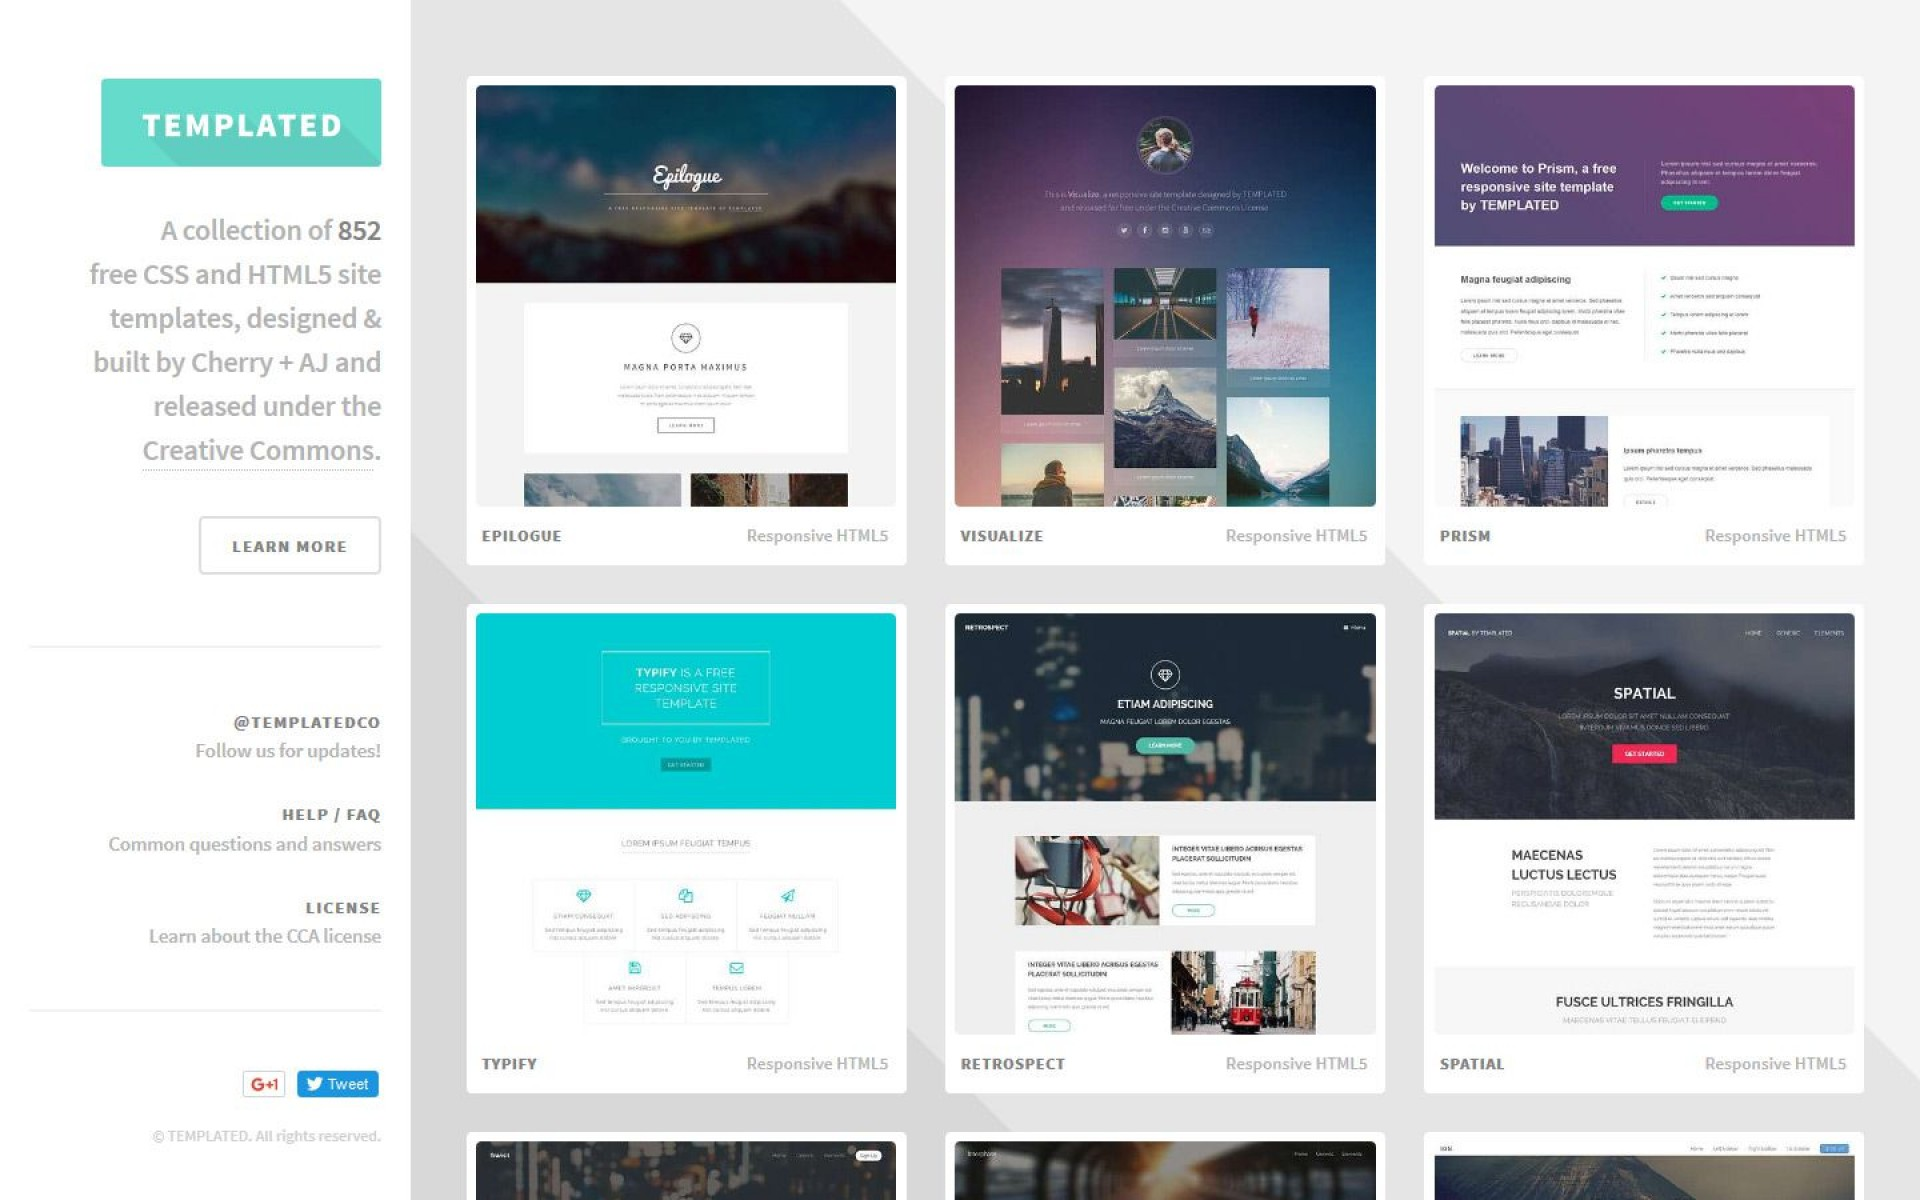 002 Fascinating Simple Html Responsive Website Template Free Download Example  With Cs Bootstrap1920